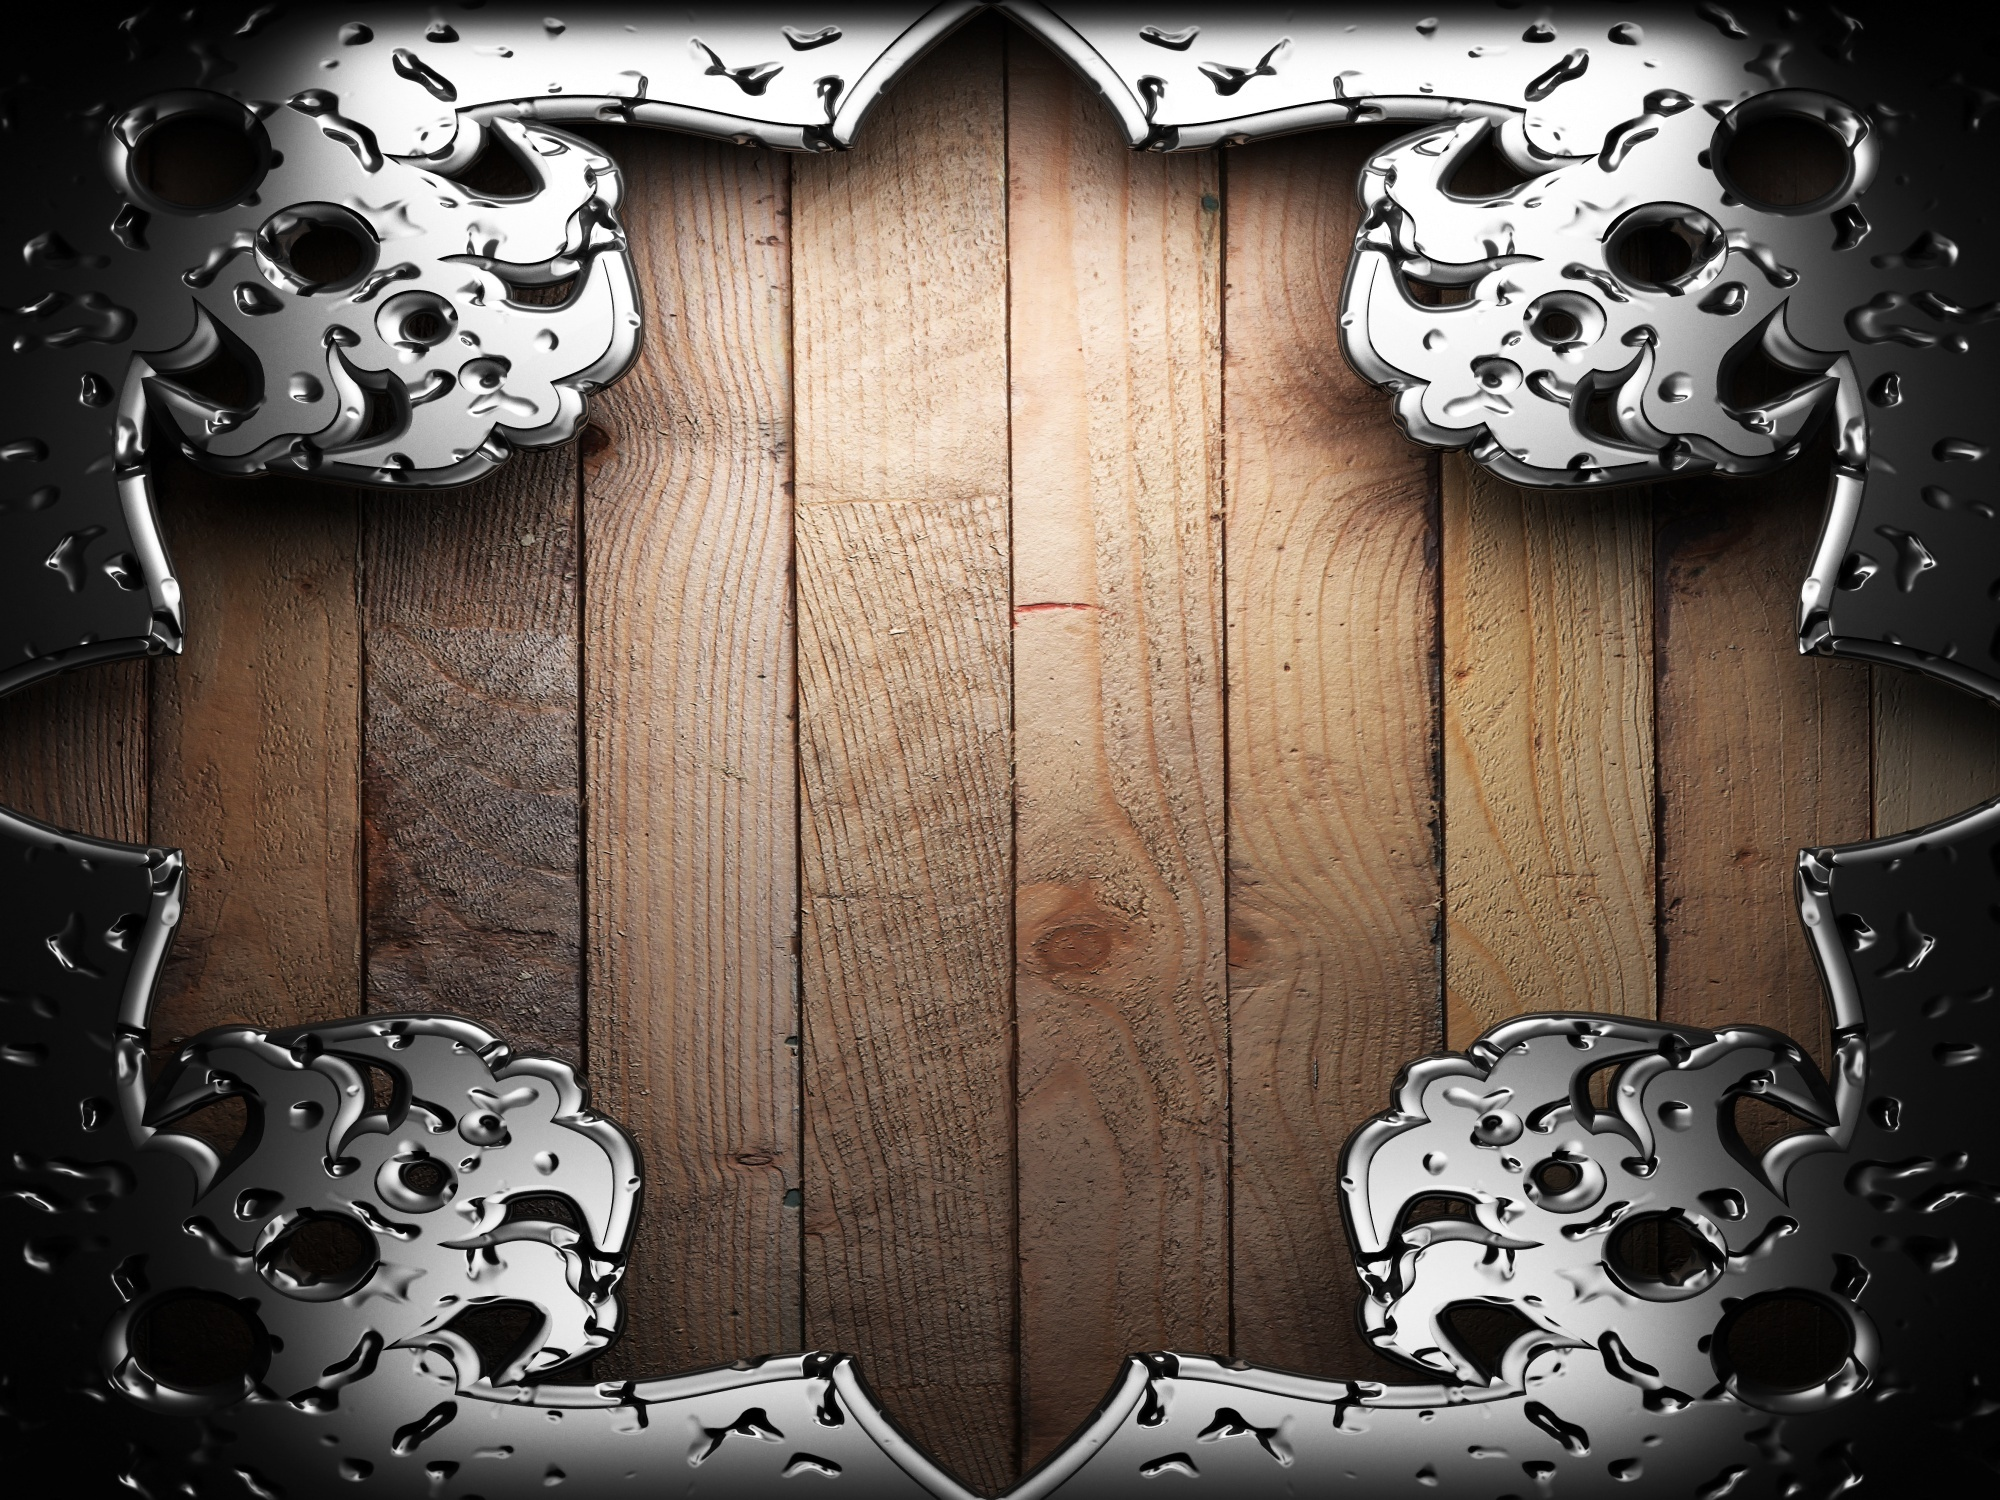 Bokeh wood metal abstract border wallpaper 2000x1500 46033 2000x1500